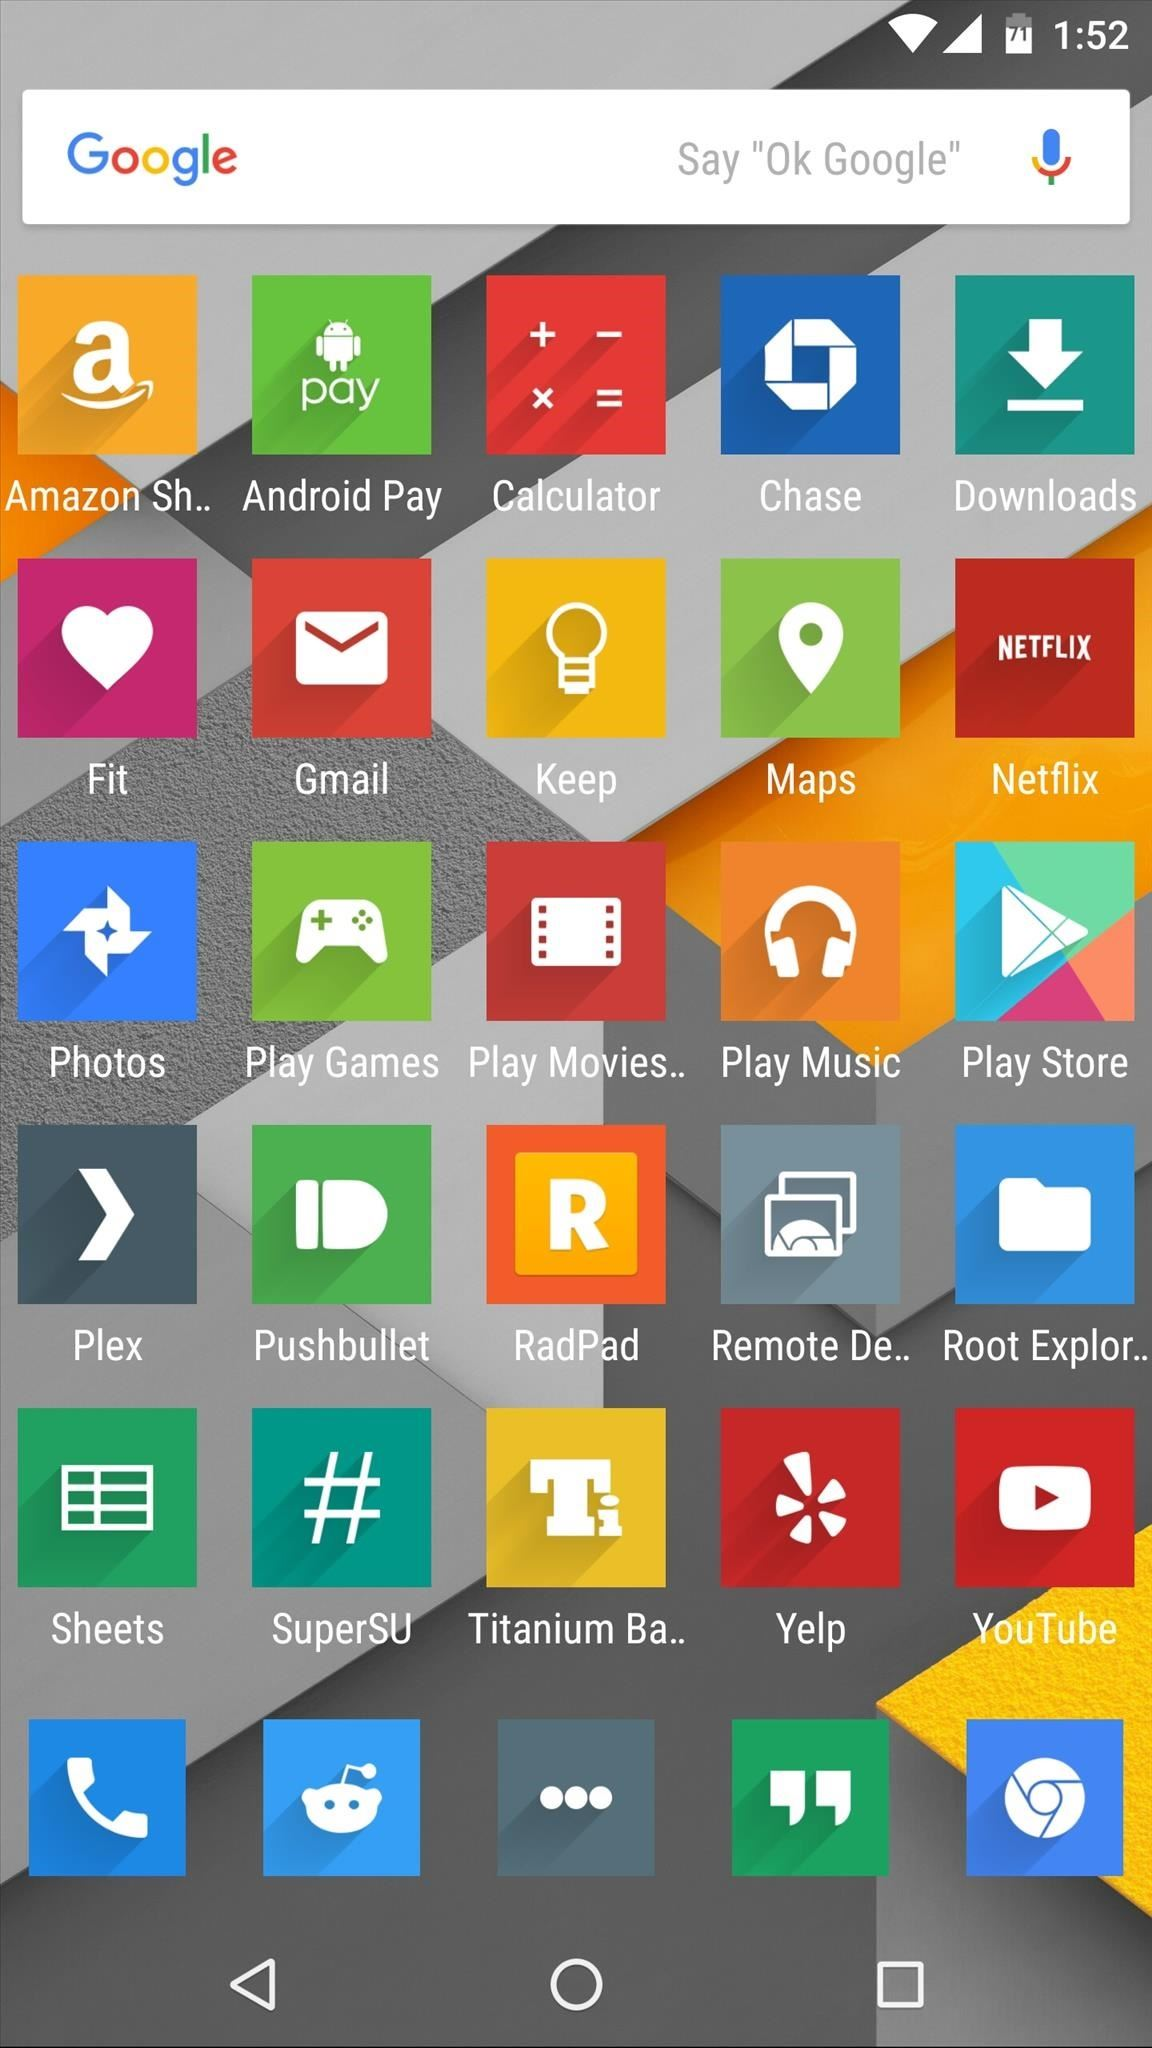 10 Free Icon Packs That'll Change the Look & Feel of Your Android